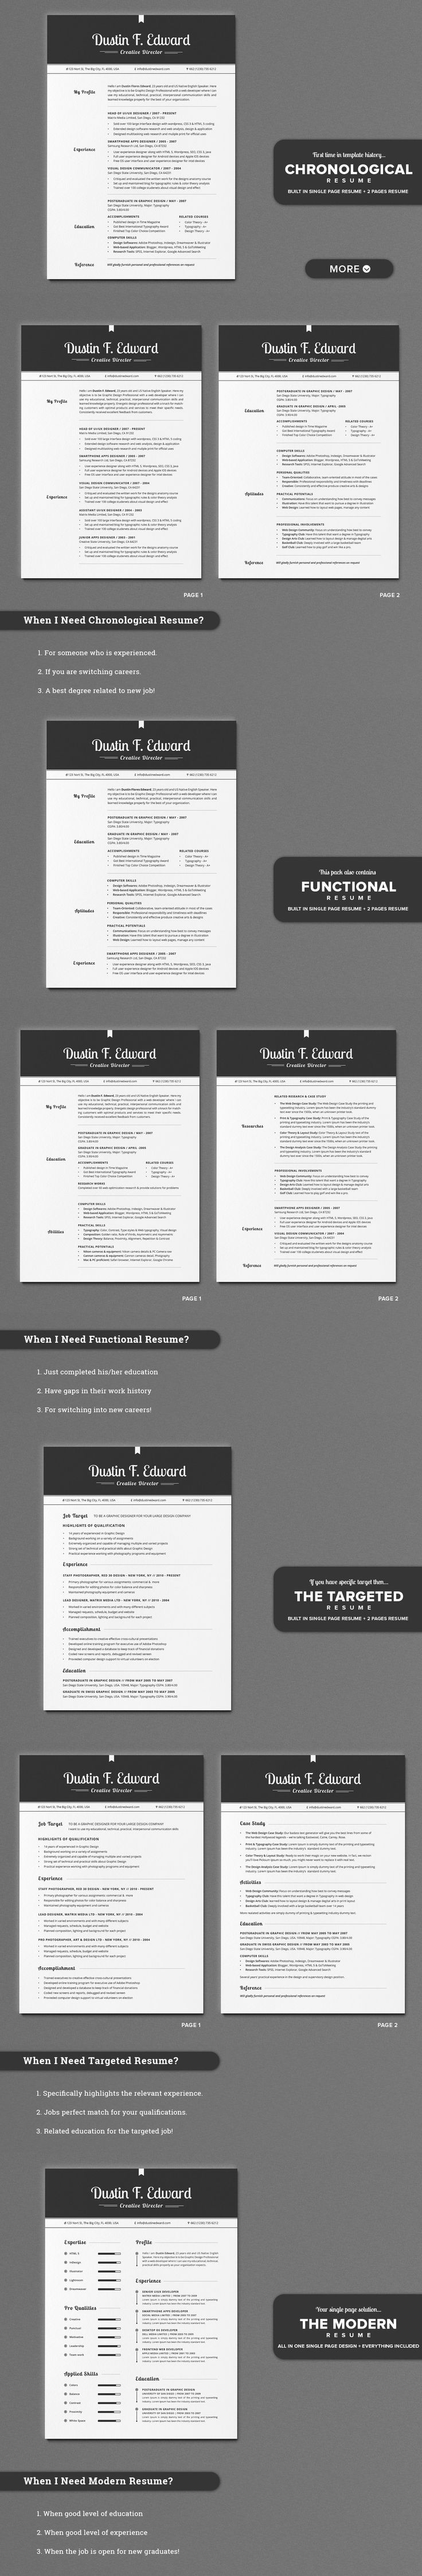 Cosmetology Resume%0A All in One Elegant Resume CV Pack